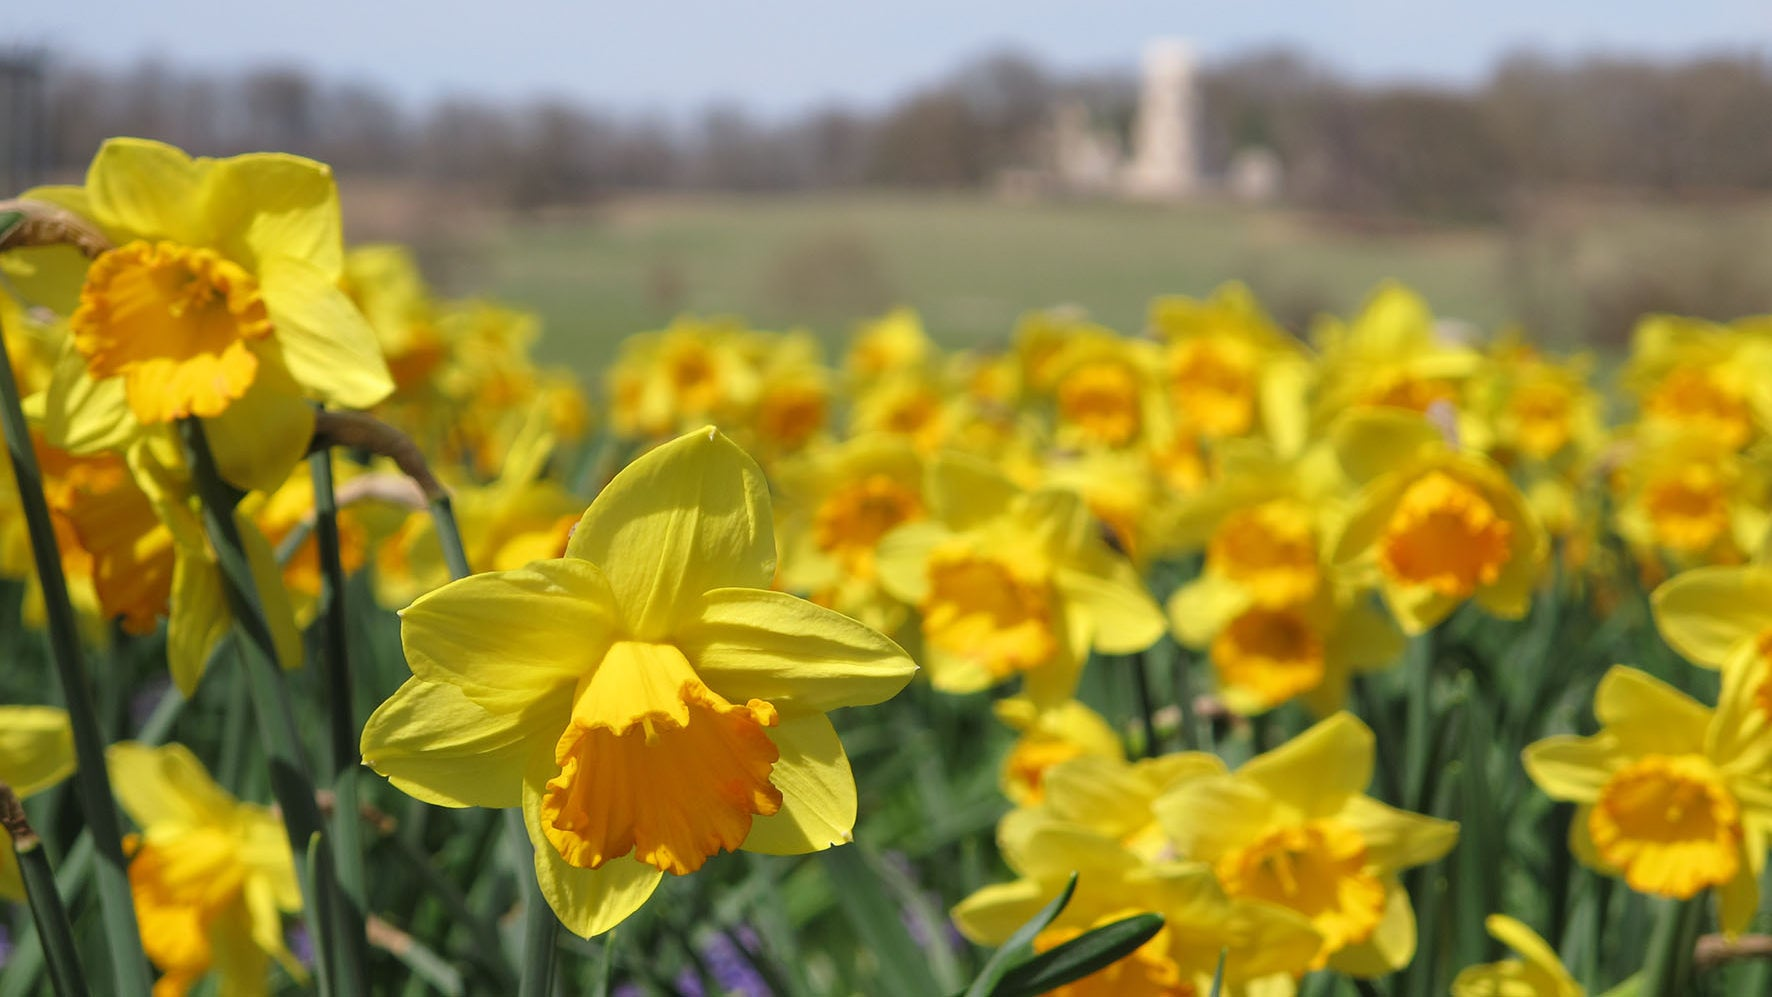 Daffodils in the Pleasure Grounds at Wimpole